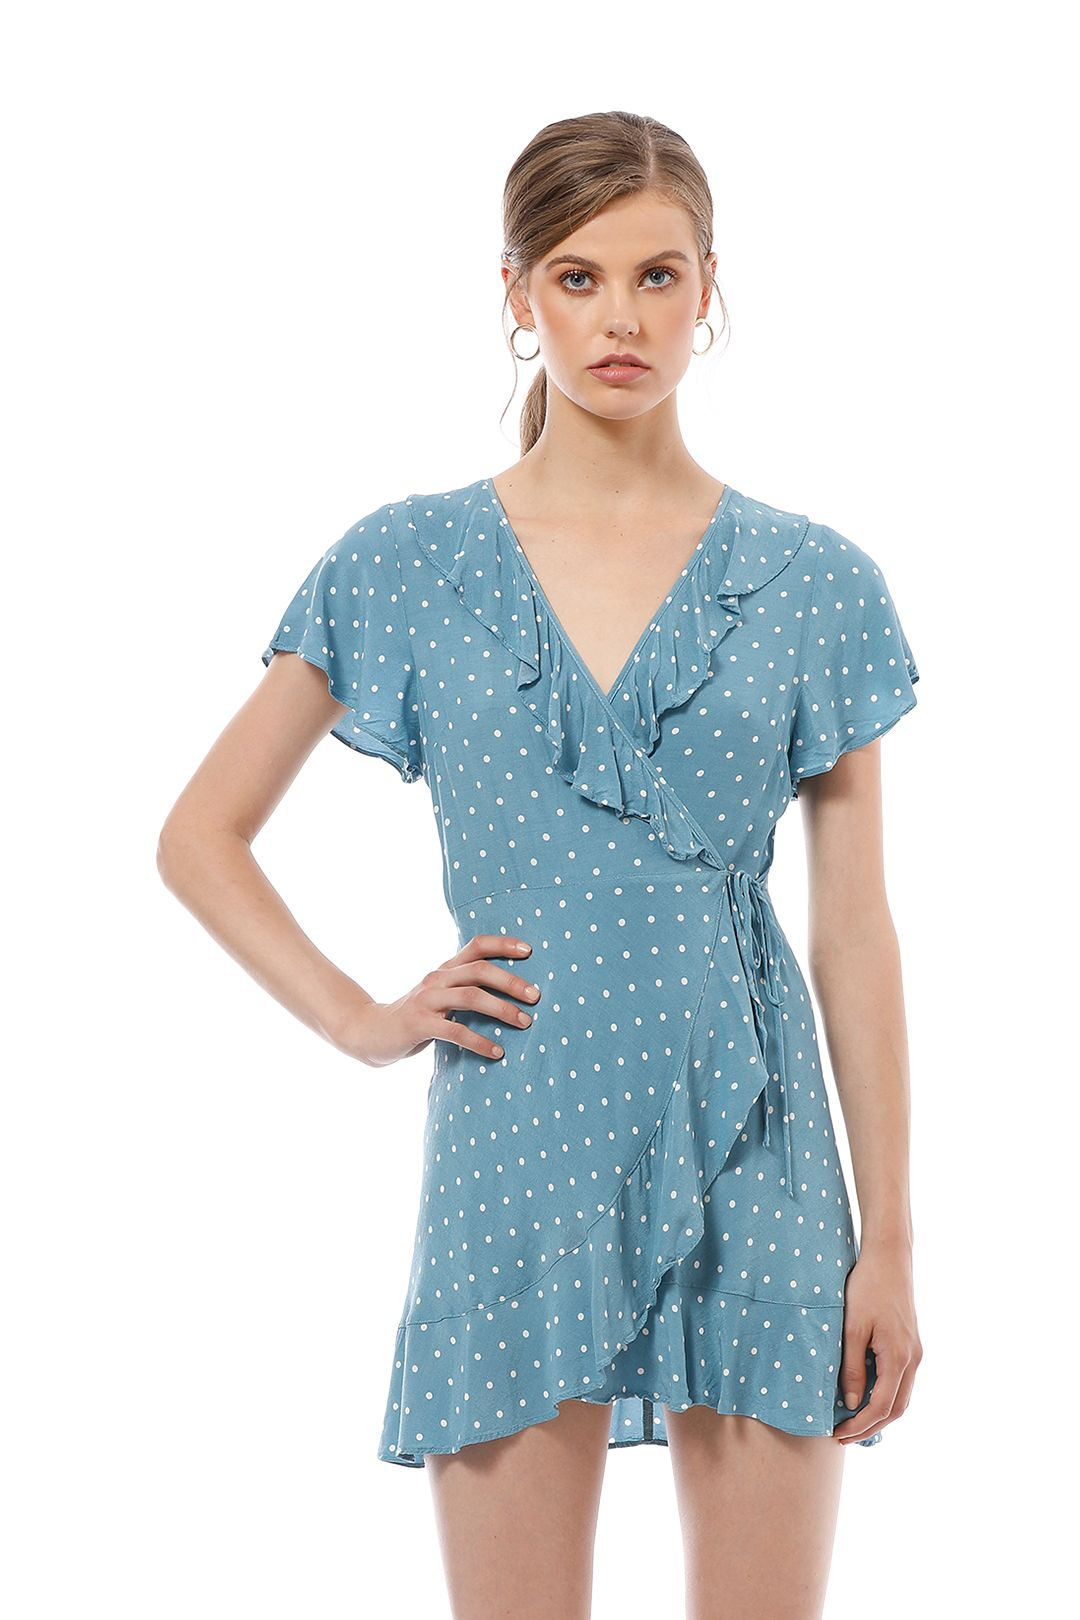 Auguste - Polly Frill Neck Wrap Mini Dress - Blue - Close Up